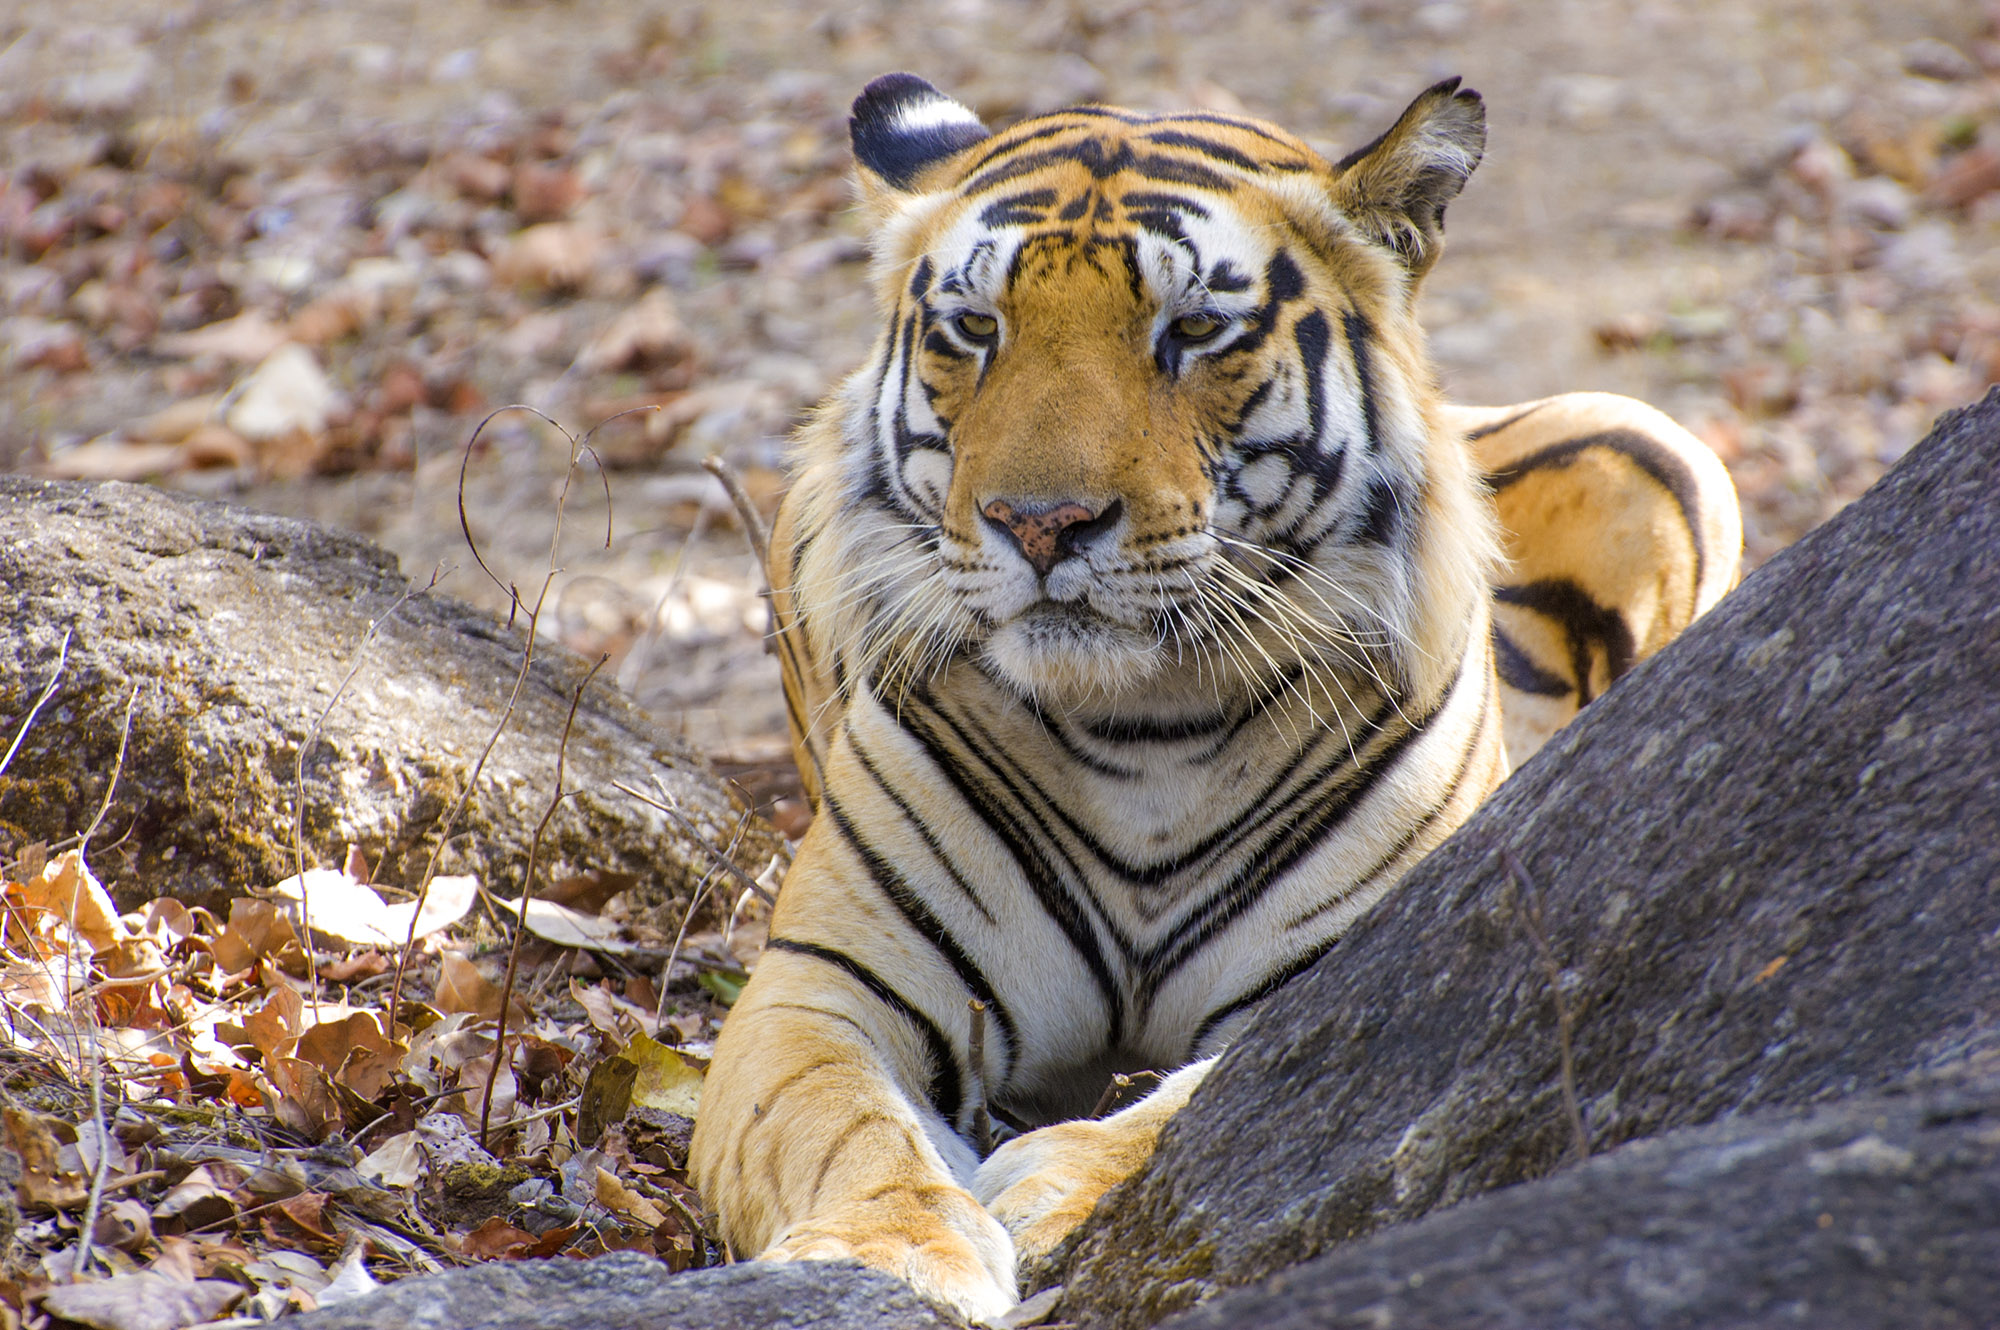 Tiger in Kanha @dkinwild